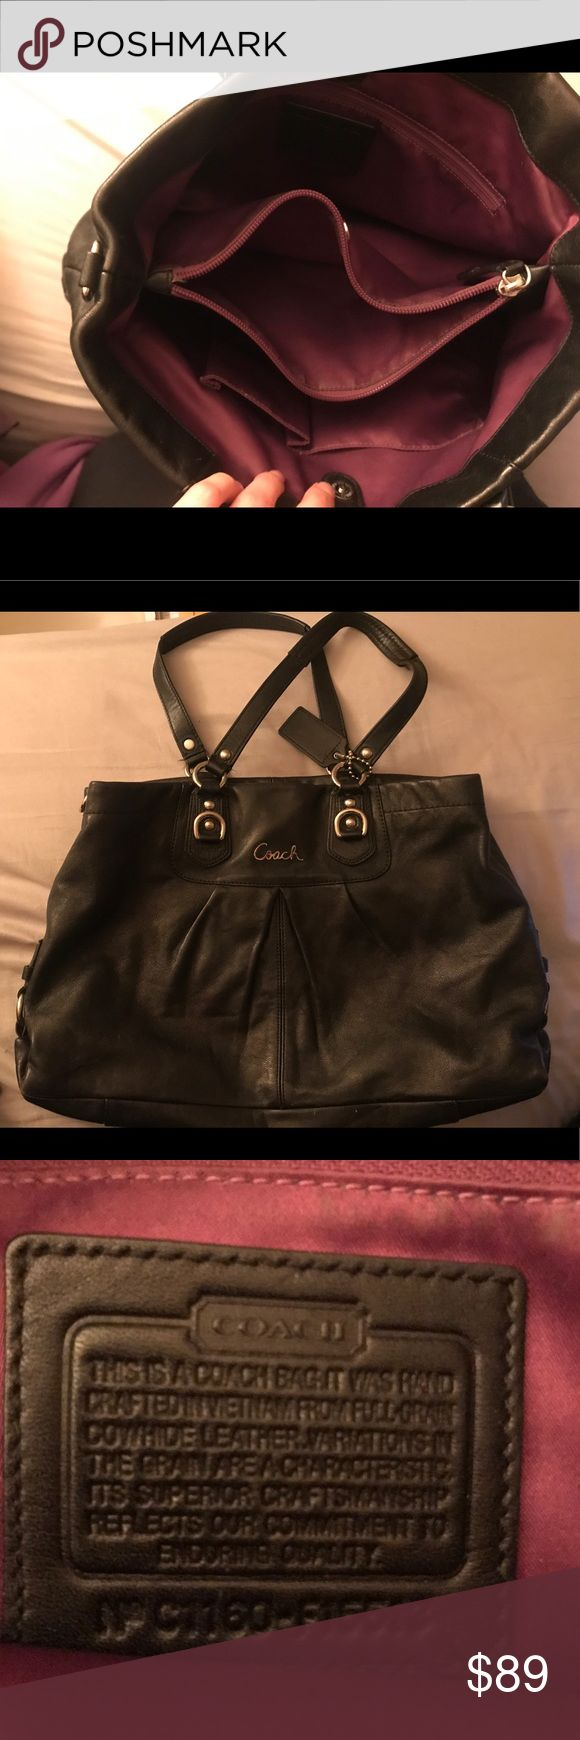 Black Coach Purse Authentic black outside and purple inside Coach purse. Normal wear. No rips. All working zippers. Smoke and odor free. Coach Bags Shoulder Bags